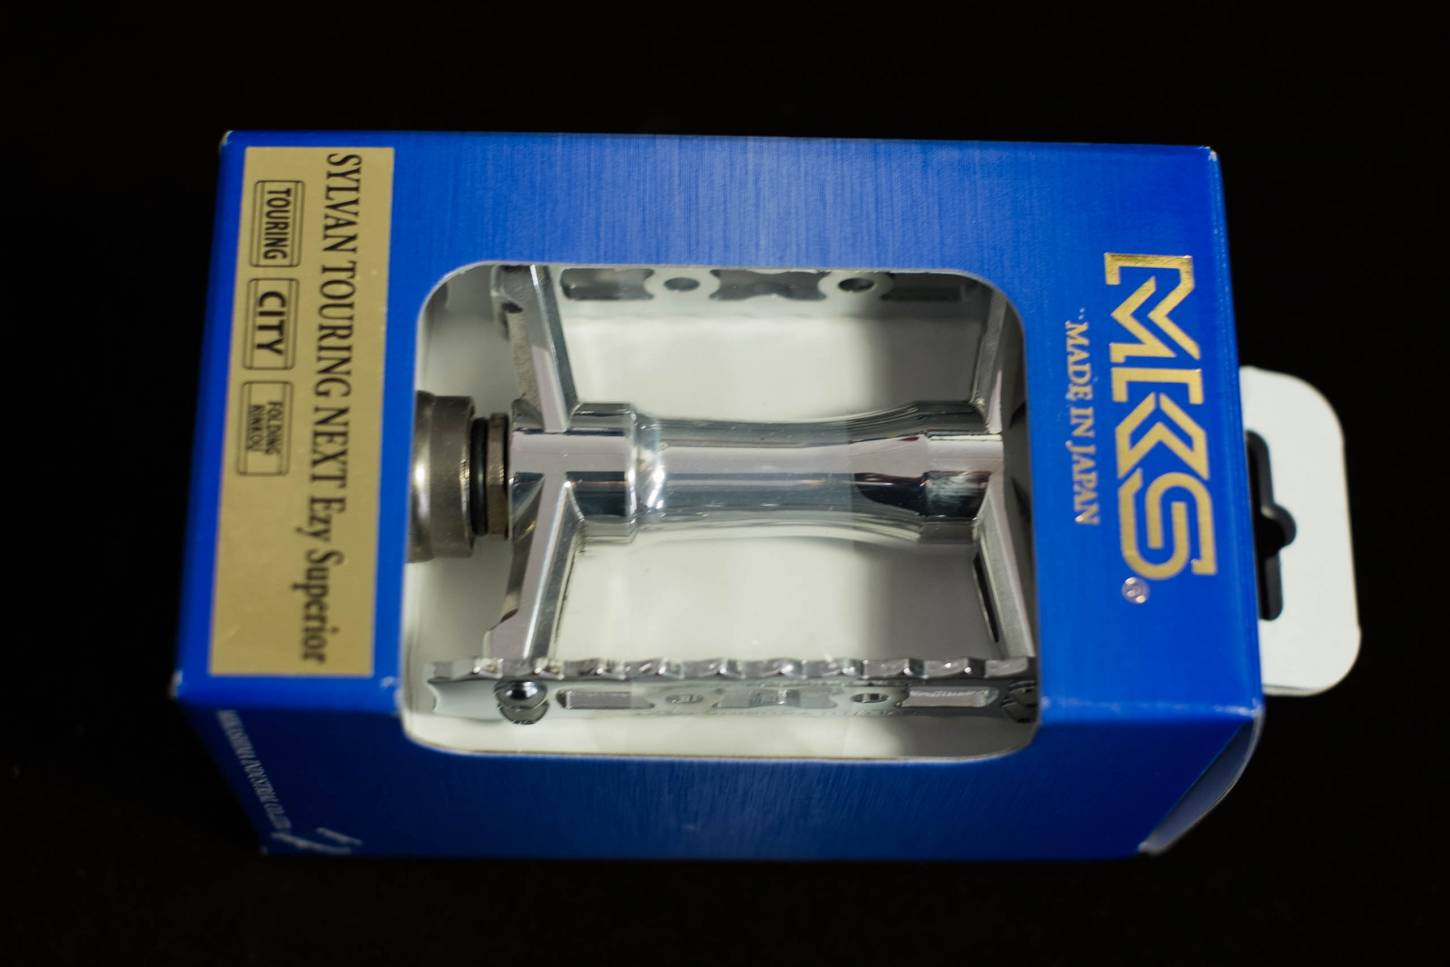 MKS Pedal, Ezy Steckpedale, Touring Next, silber poliert,